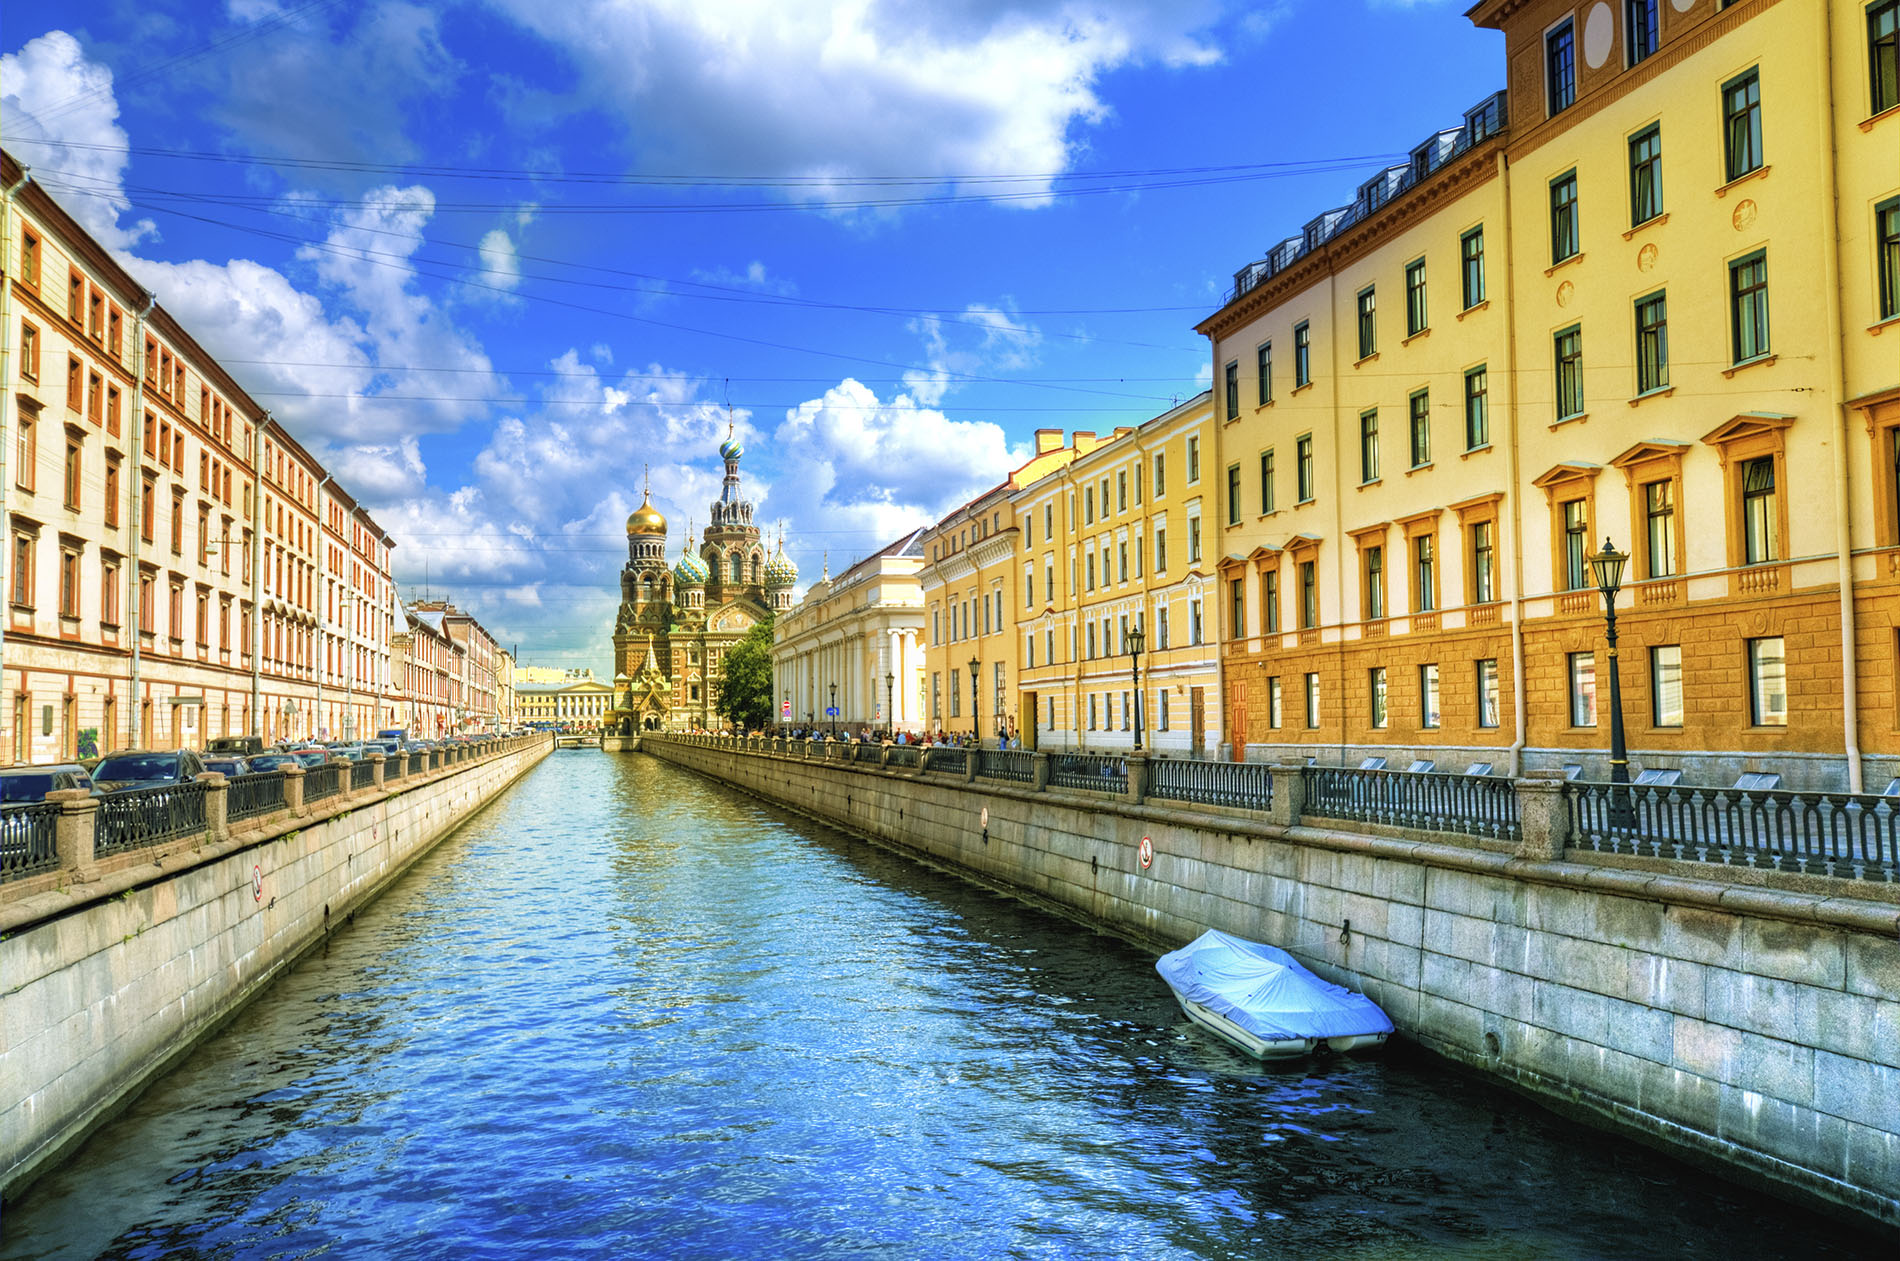 River in St Petersburg with The Church of Our Savior on Spilled Blood in the background